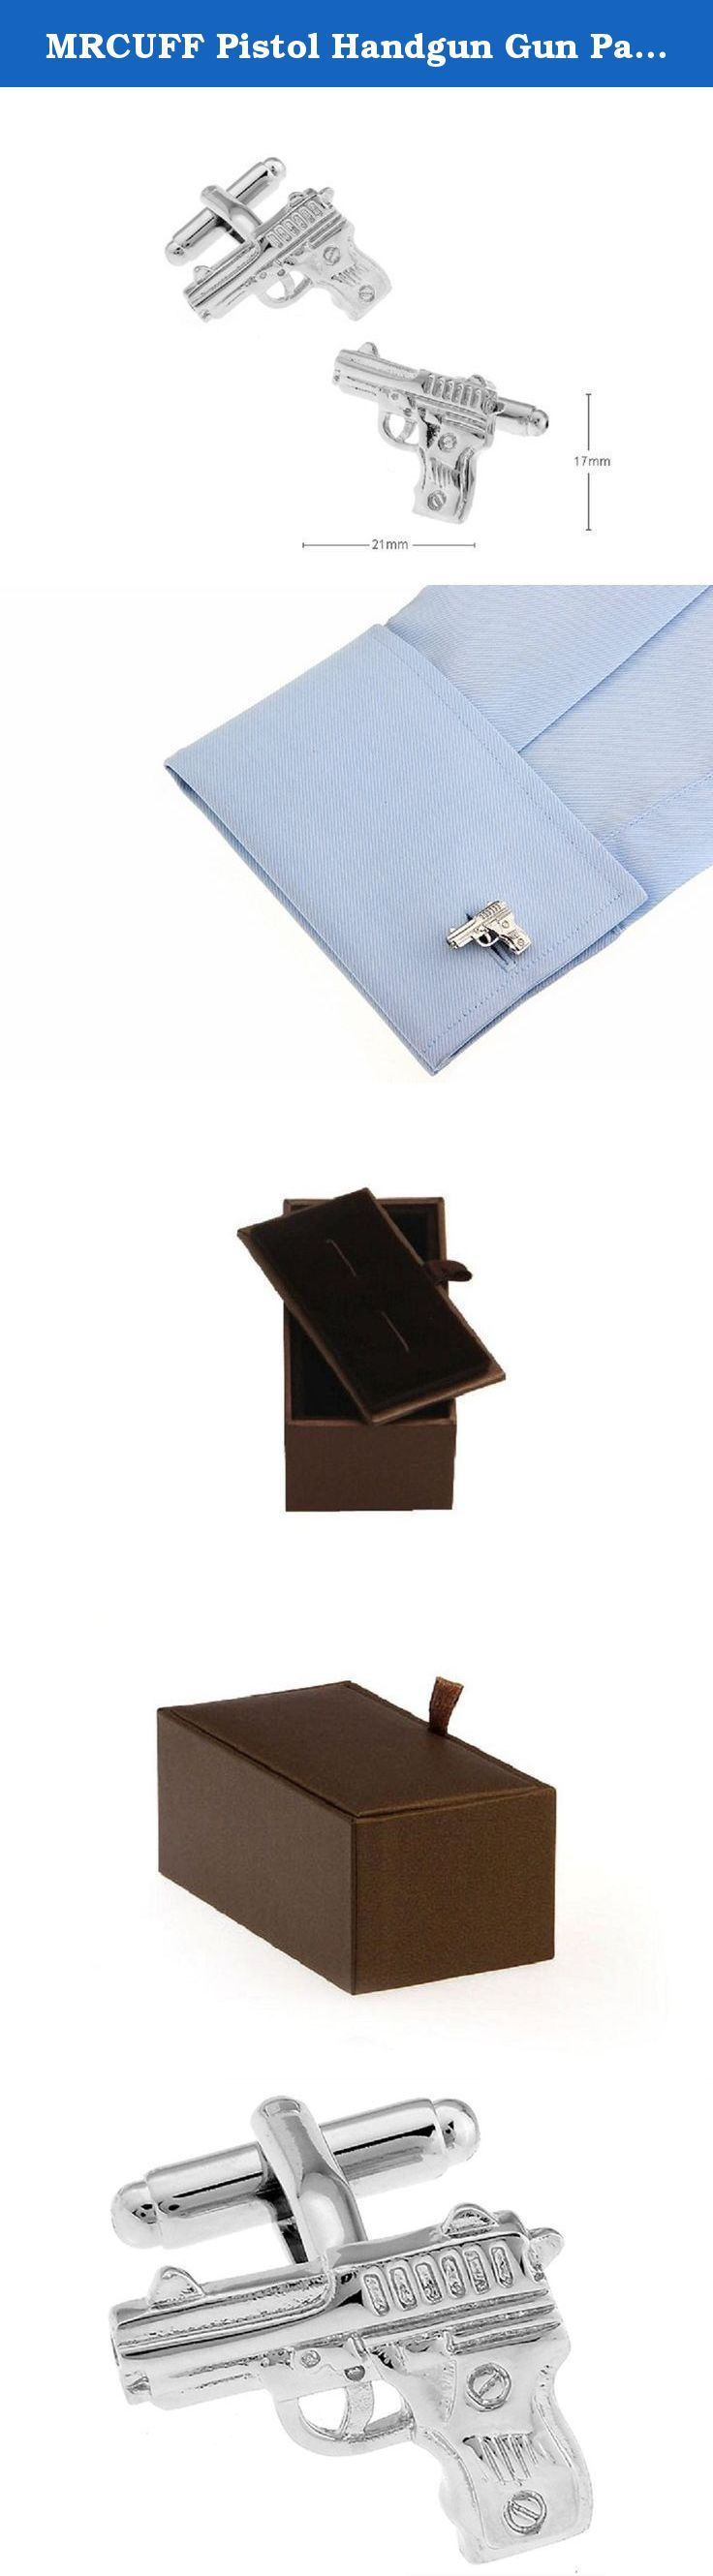 MRCUFF Pistol Handgun Gun Pair Cufflinks in a Presentation Gift Box & Polishing Cloth. Best quality and price for the set with a deluxe presentation gift box. The lid is reversible and can be closed tight and flat for gift giving or storage. It may also be flipped over to display the cuff links on the lid held in place by two elastic bands. Solid feel and long lasting construction so you can buy and wear with confidence.